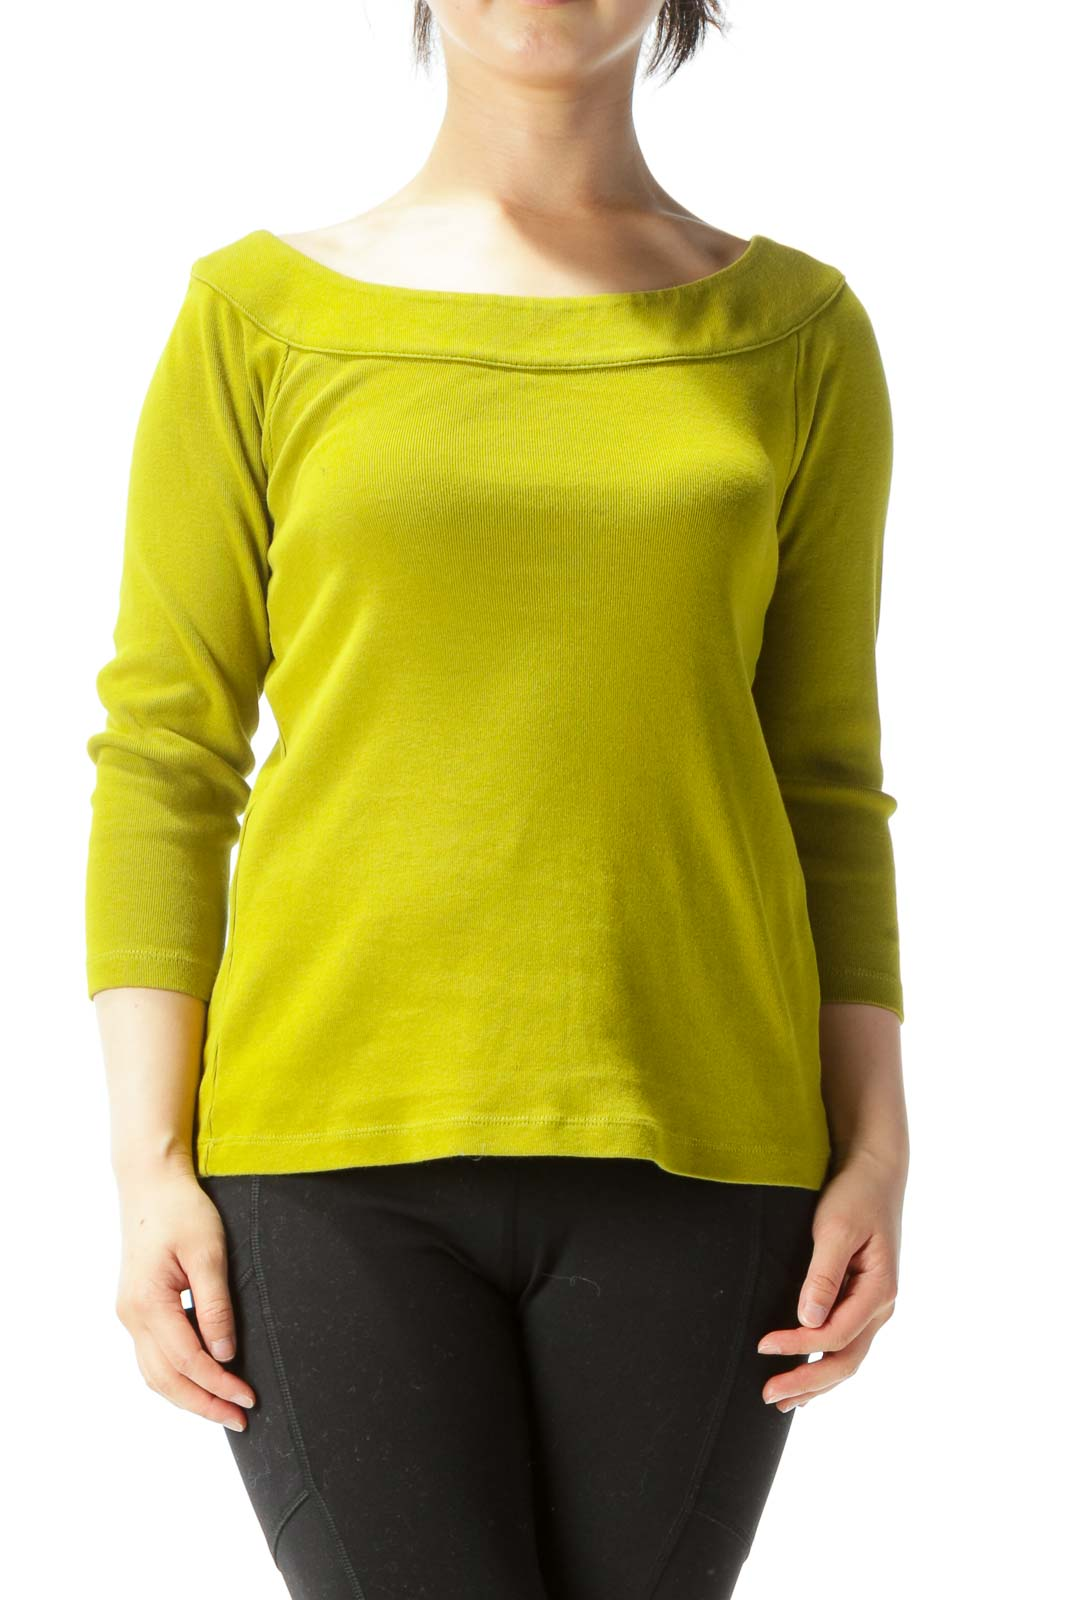 Olive Boat-Neck 3/4-Sleeve Knit Top